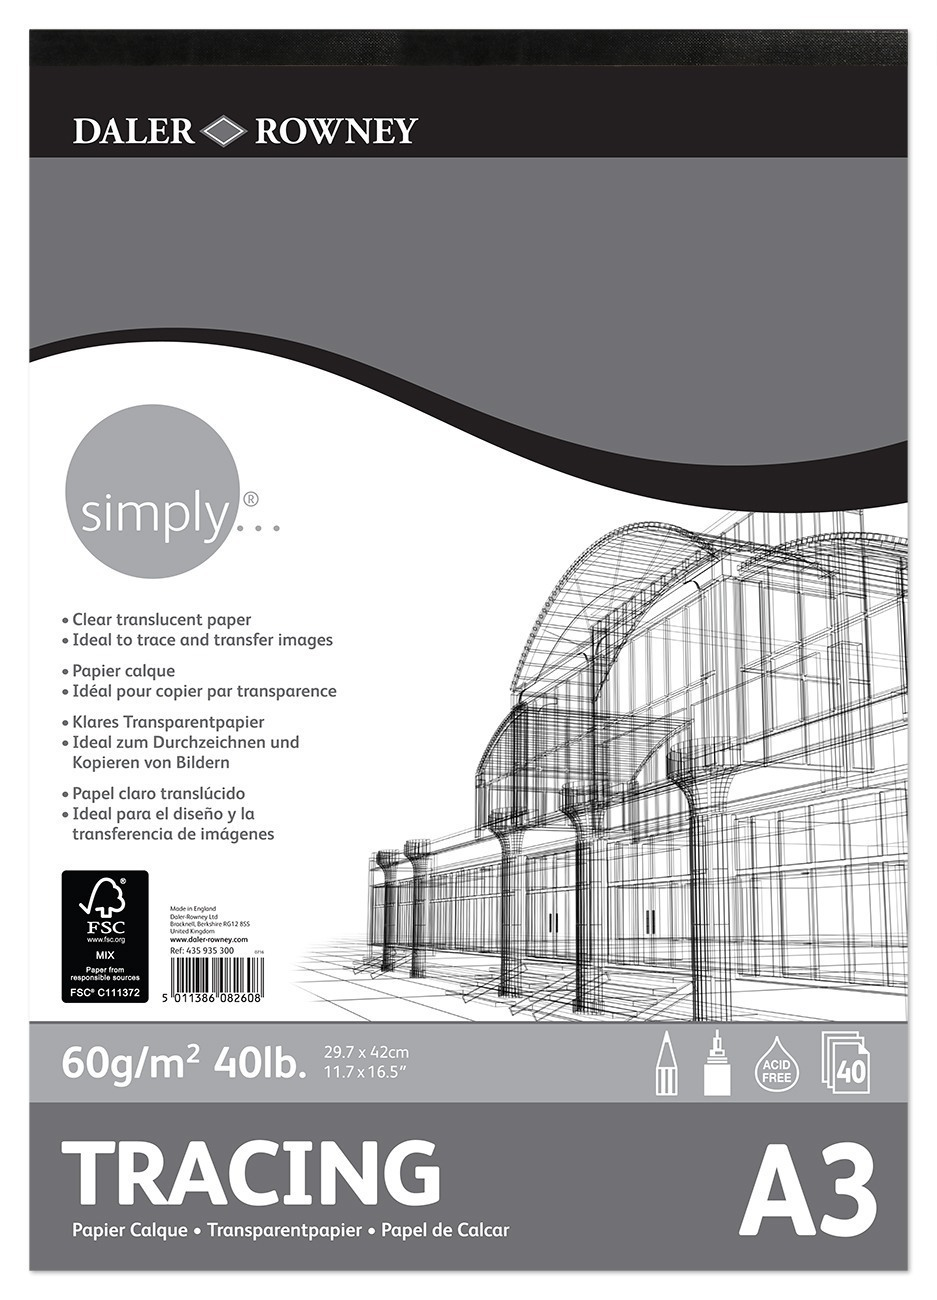 Darler-Rowney Tracing Pad A3 60gsm